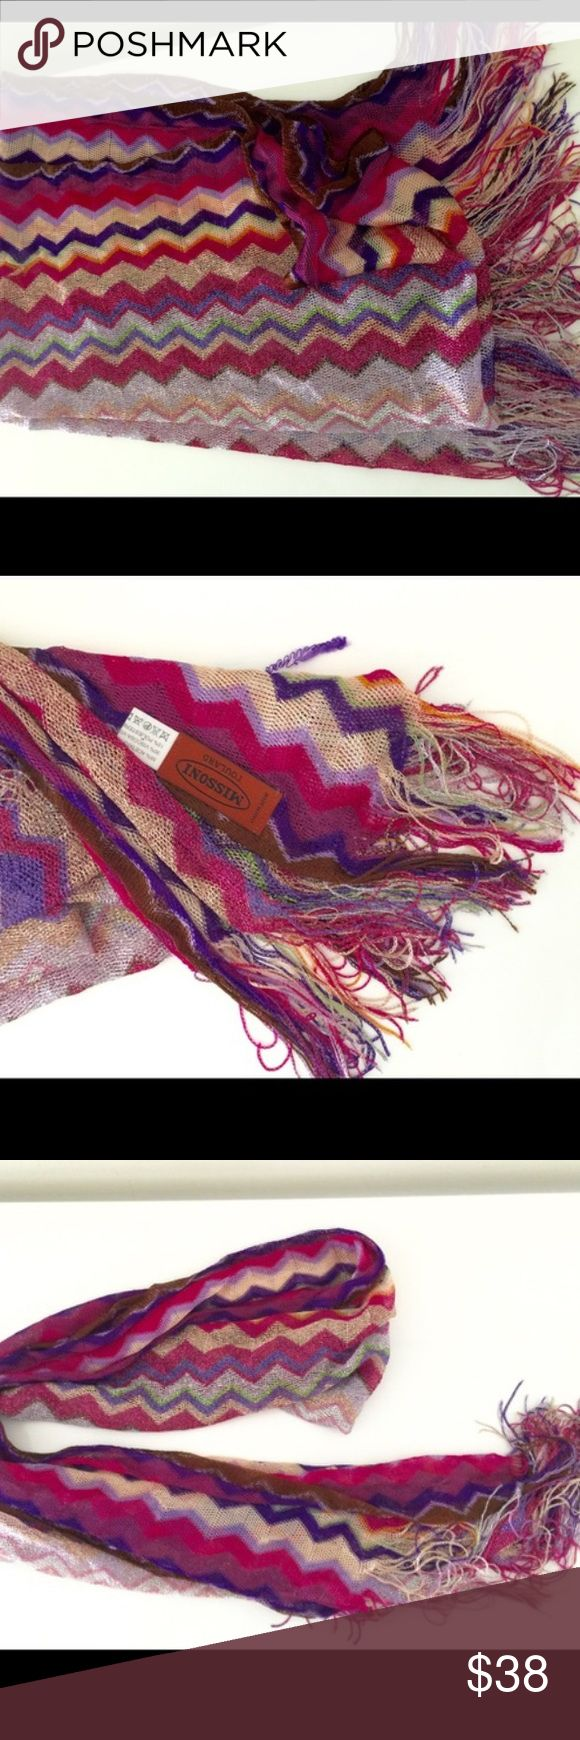 Missoni scarf Greet Missoni Accessories Scarves & Wraps